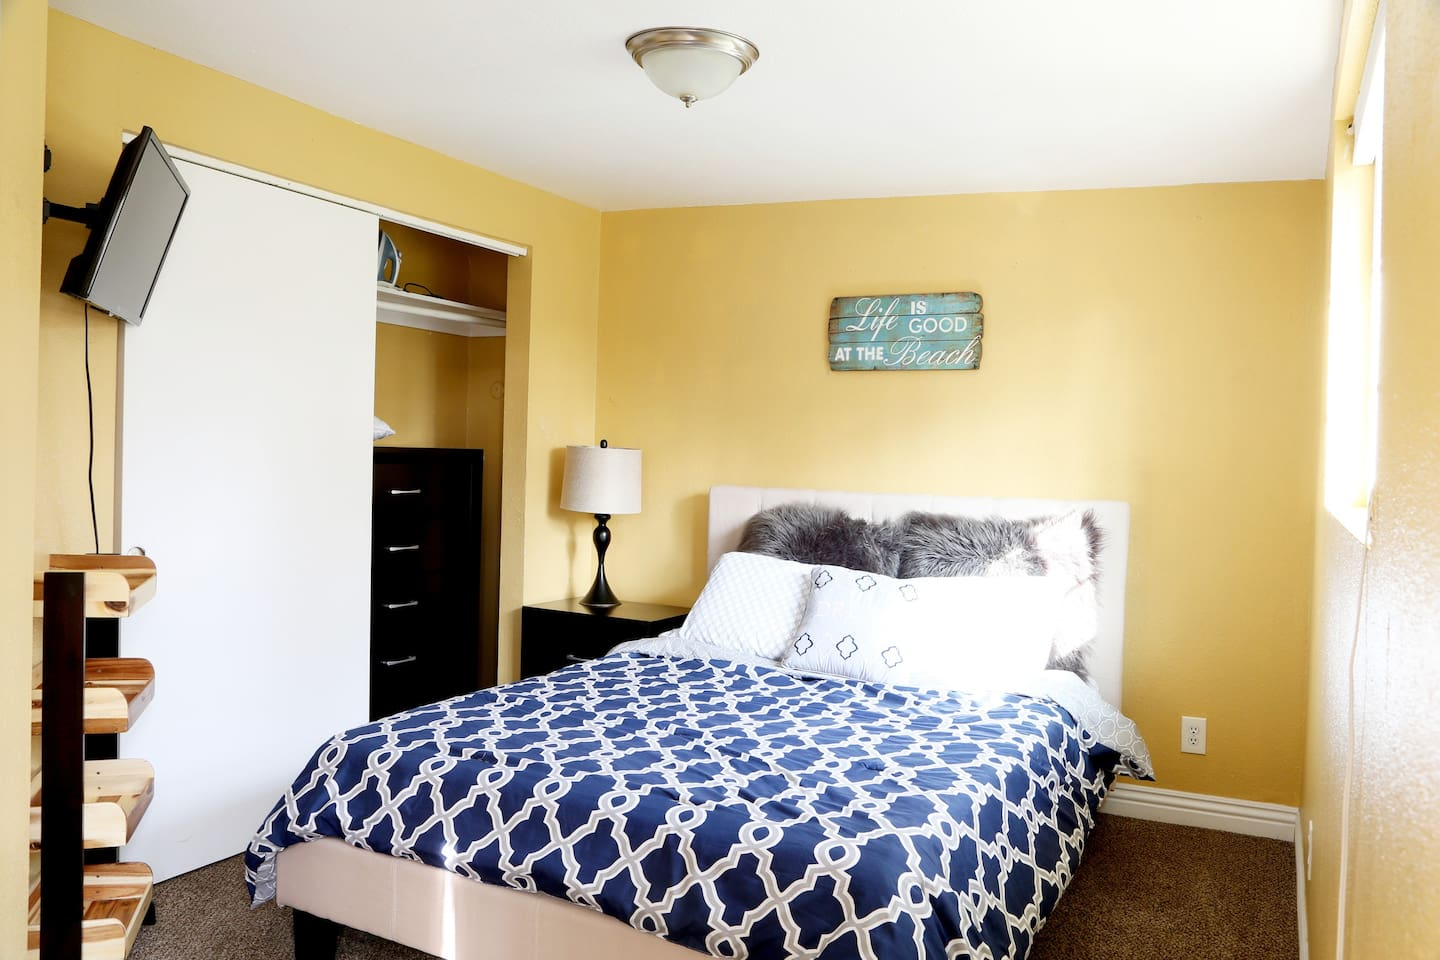 Brand new Queen Sized Pillow Top Bed